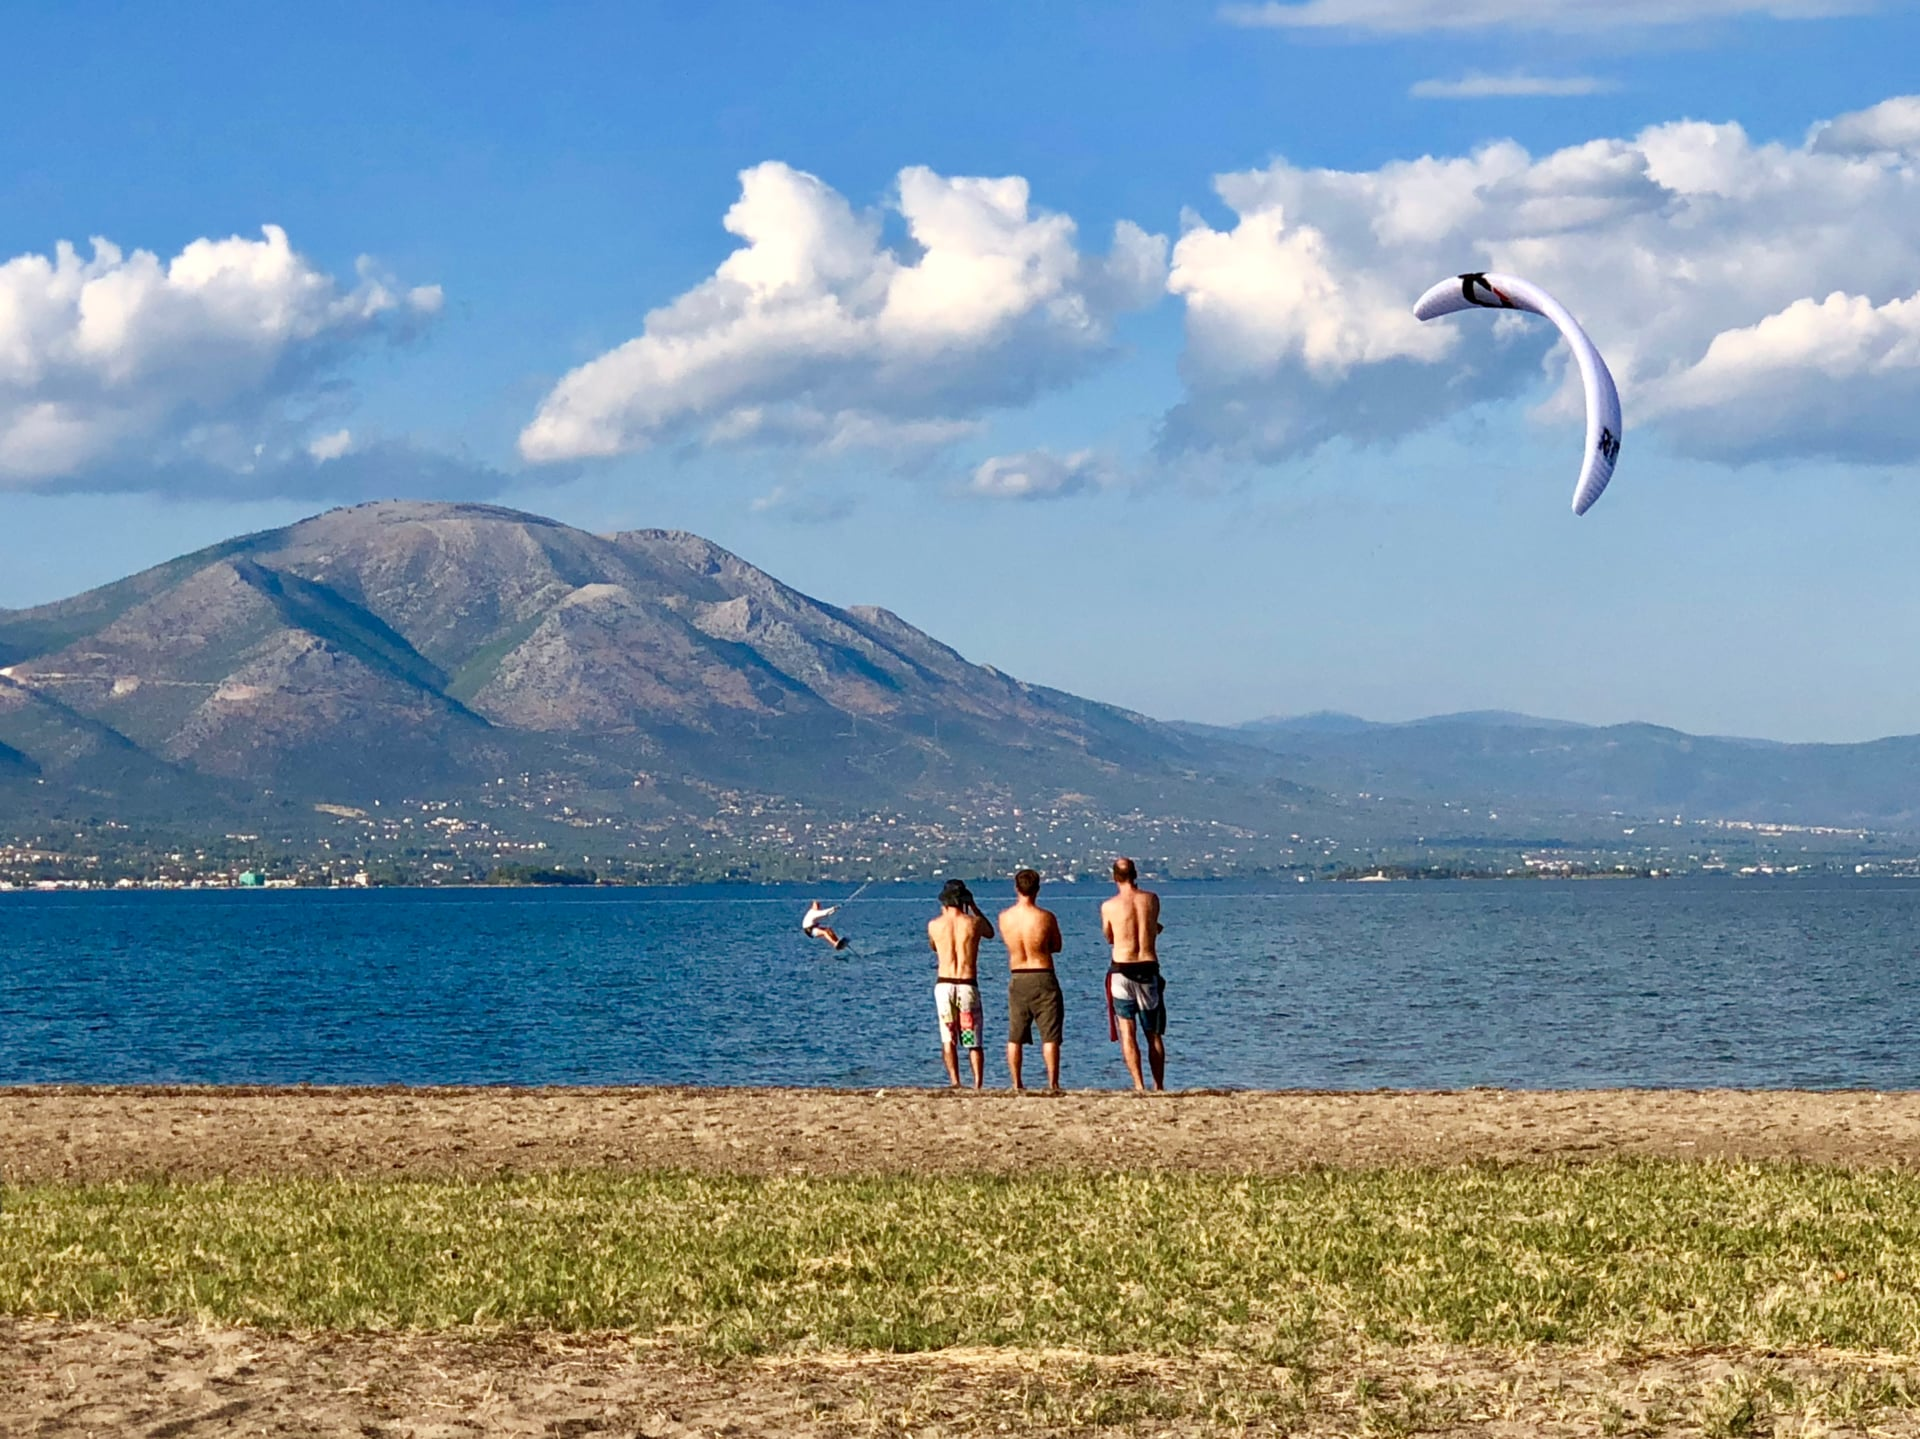 Cameron light wind kitefoiling in Greece - with Epic Kites Kiteboarding